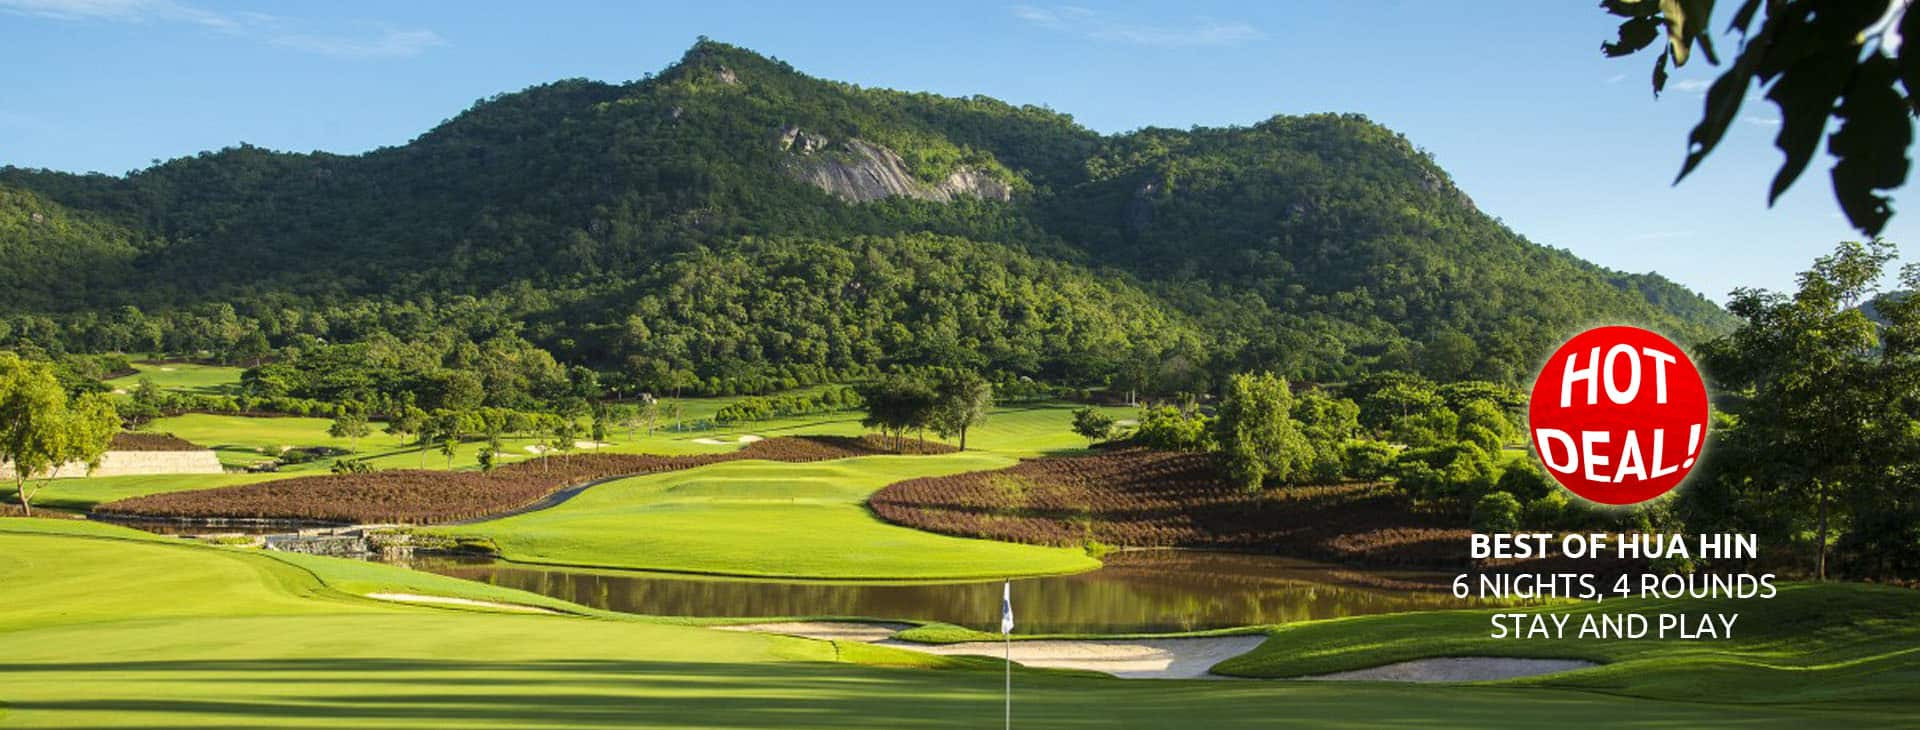 Golf-Thailand_Golf-Courses_Hua-Hin_Black-Mountain_Hot-Deals